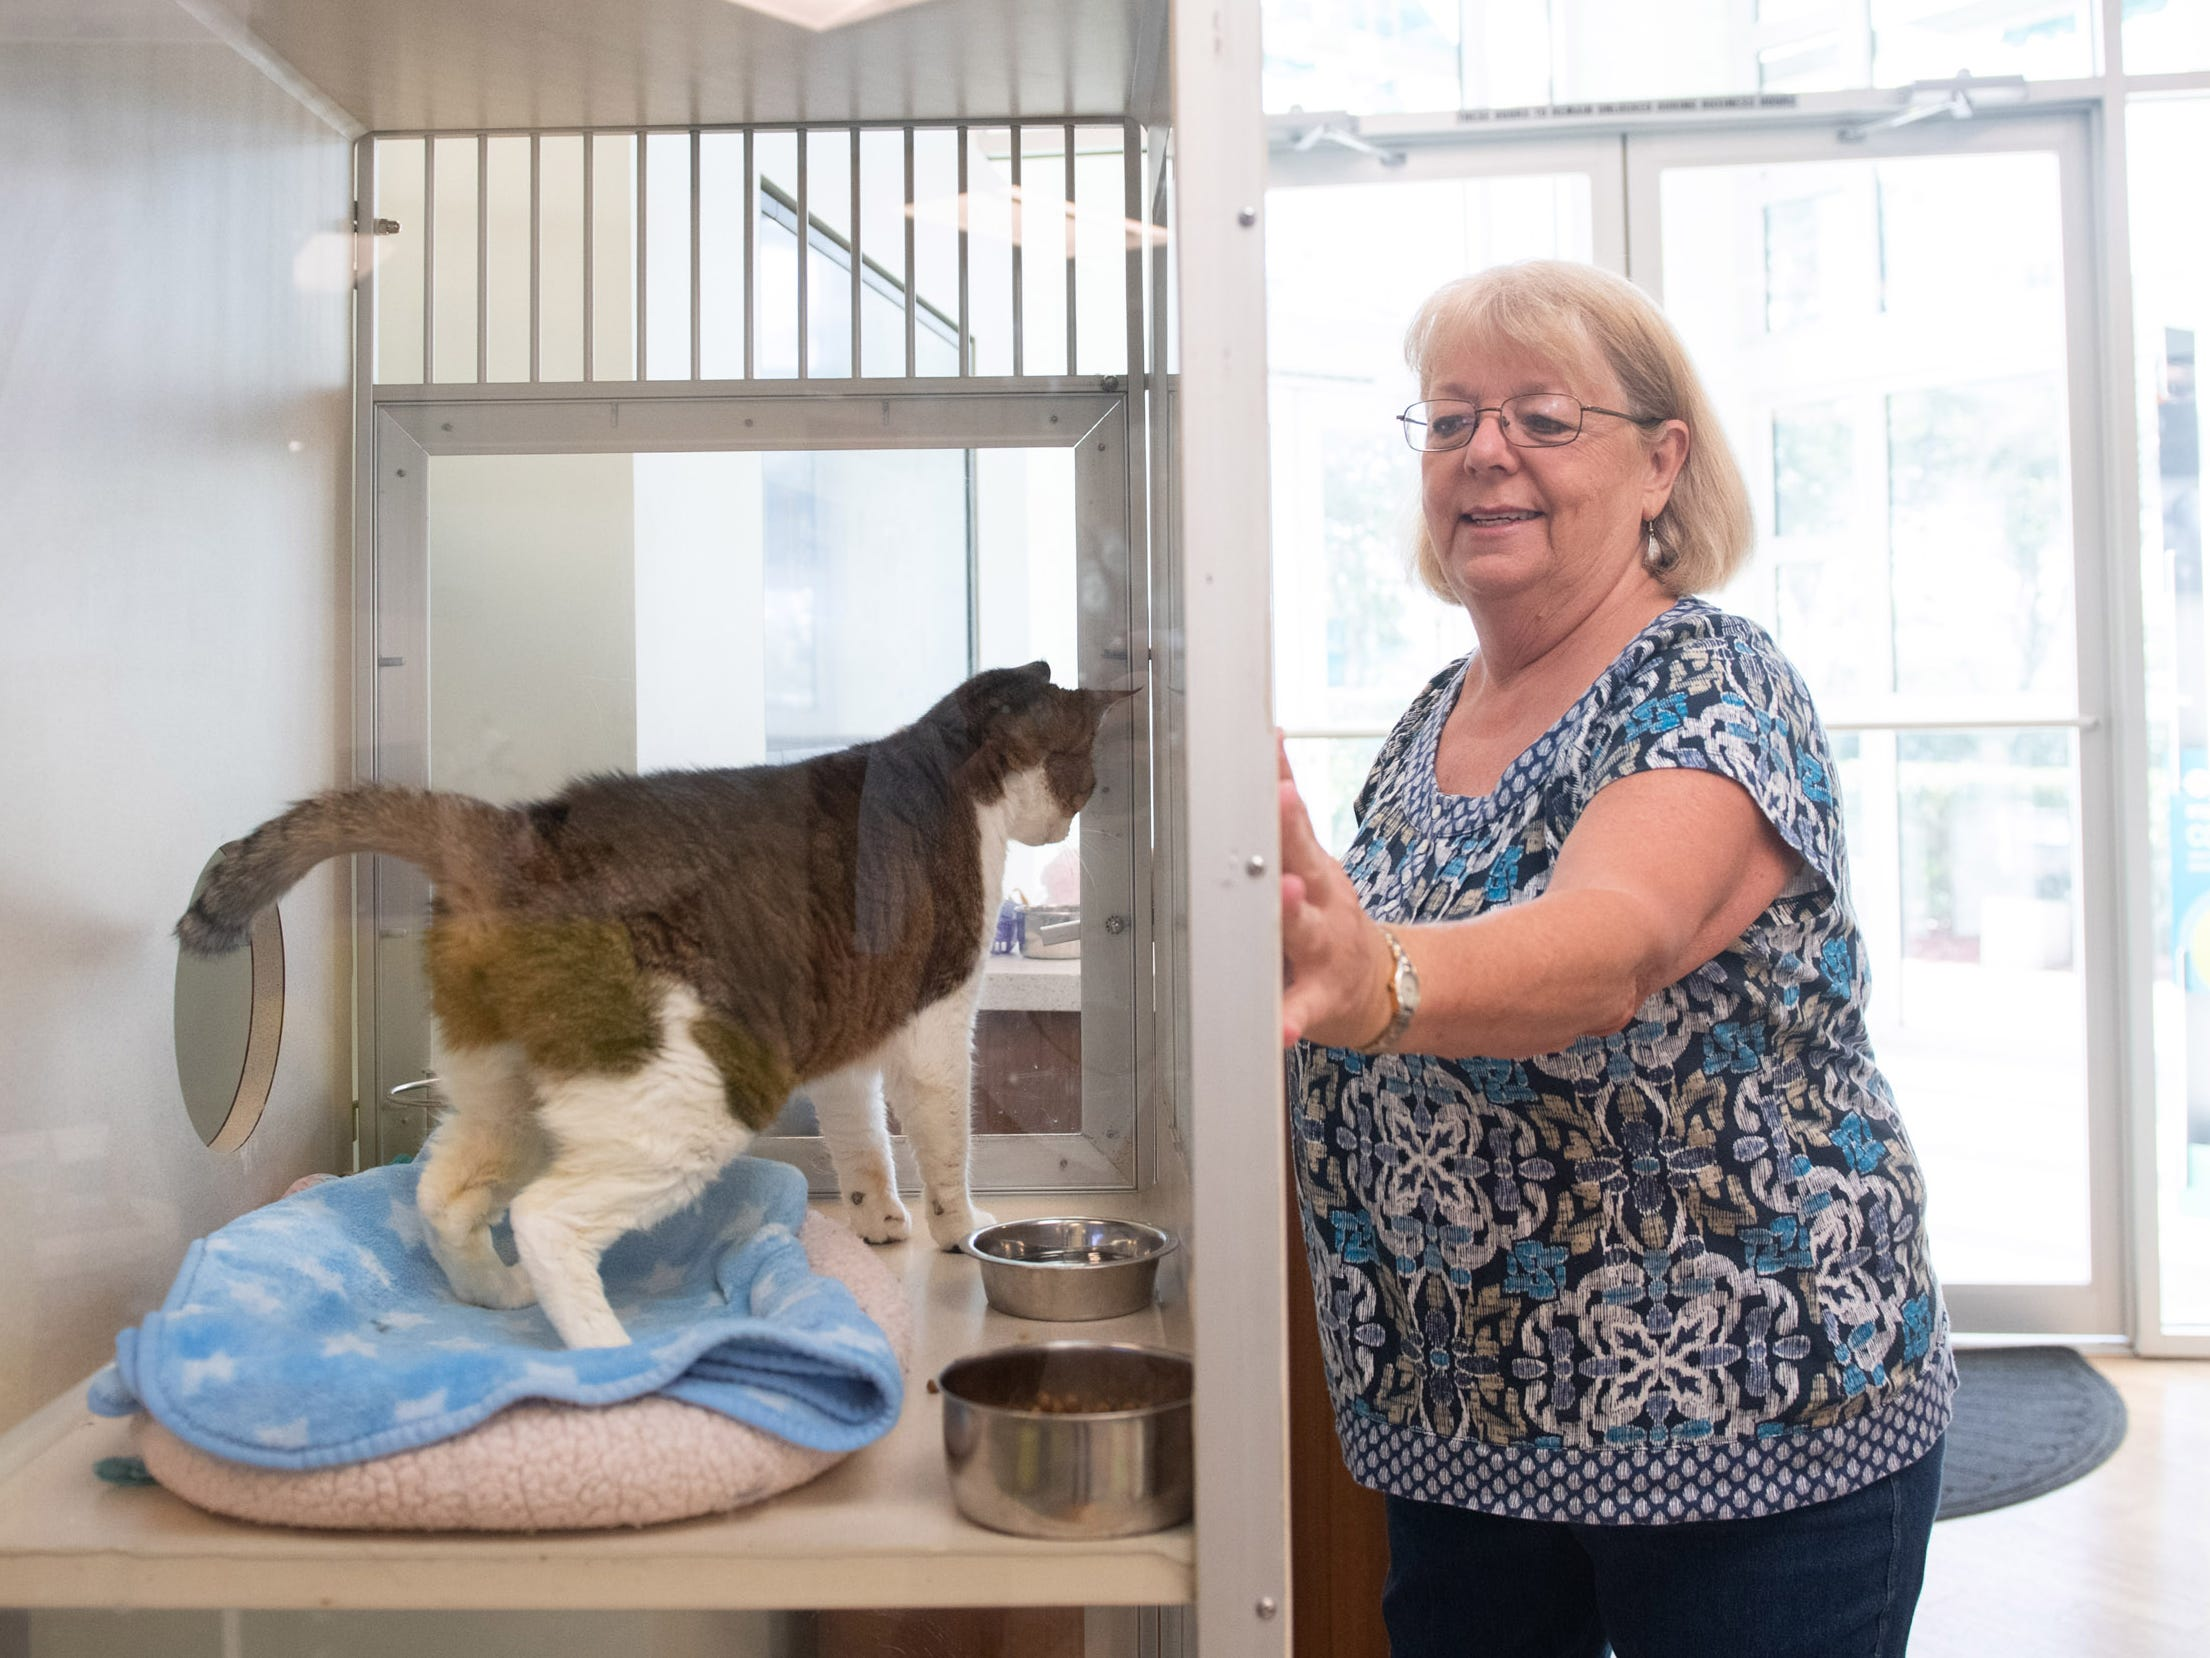 The Humane Society of Vero Beach and Indian River County has partnered with Seacoast Bank to host a new adoptable cat every week at the Seacoast Bank at 6030 20th Street in Vero Beach. Seacoast Bank received their first cat up for adoption from the shelter in October and since then they have had 18 cats adopted from their location.